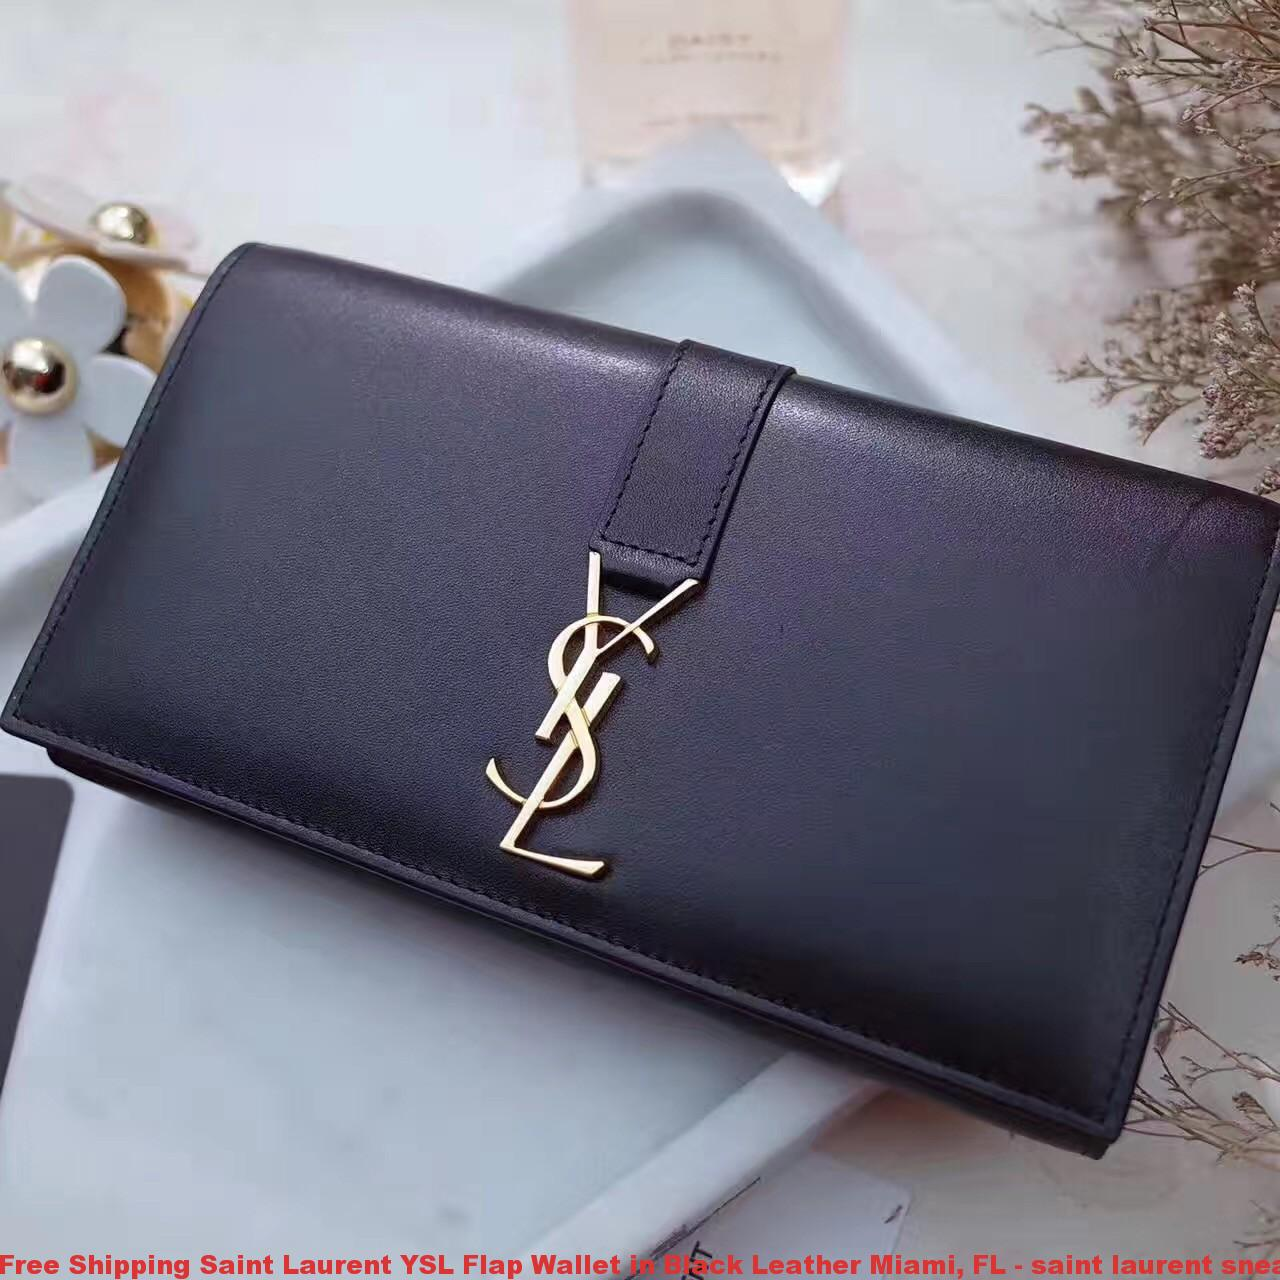 Free Shipping Saint Laurent Ysl Flap Wallet In Black